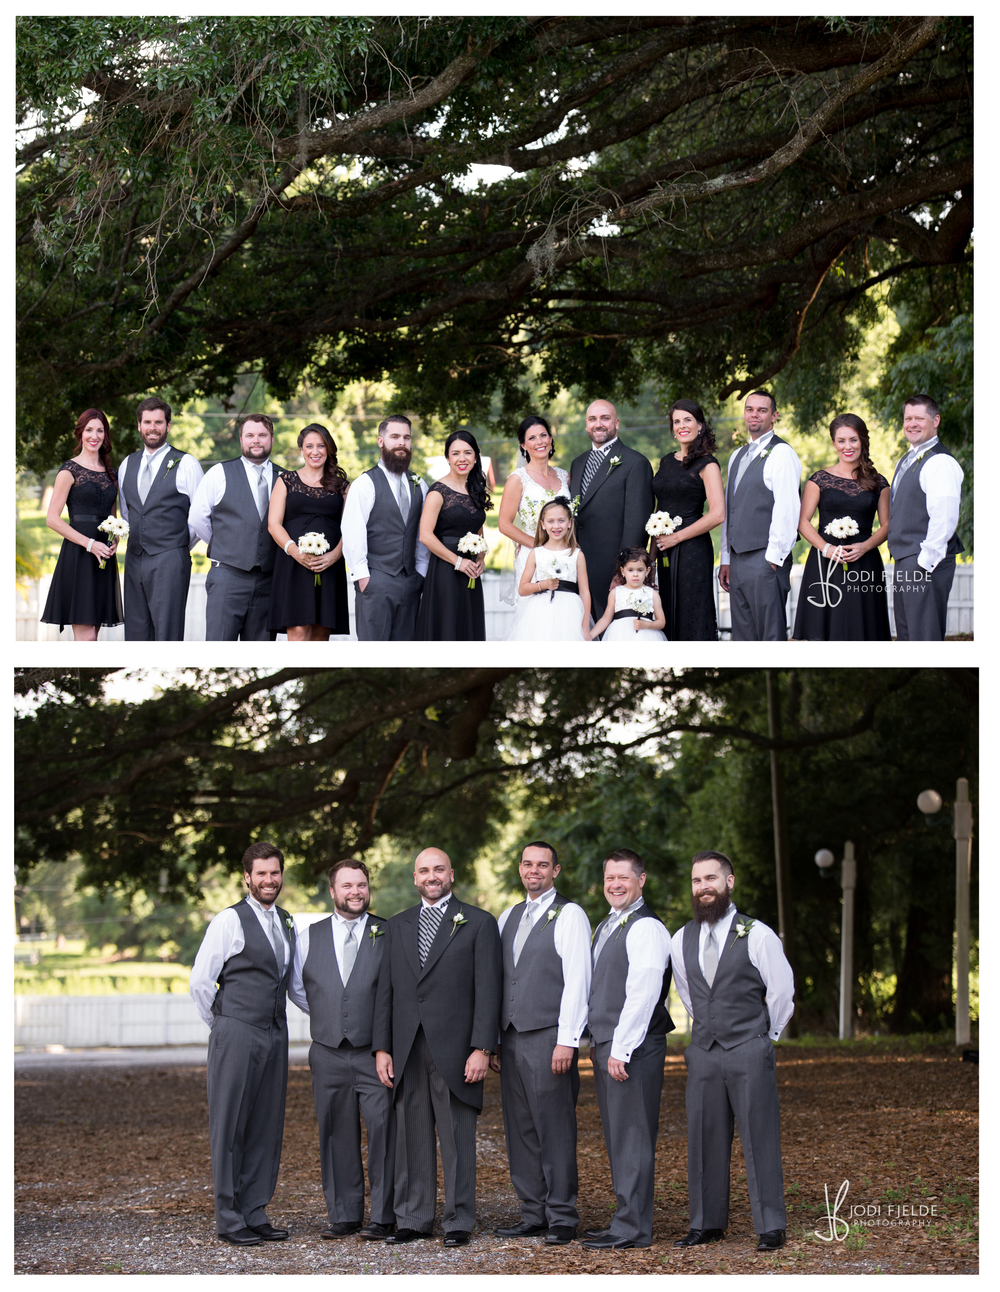 Highland_Manor_Apopka_Florida_wedding_Jackie_&_Tim_photography_jodi_Fjelde_photography-22.jpg